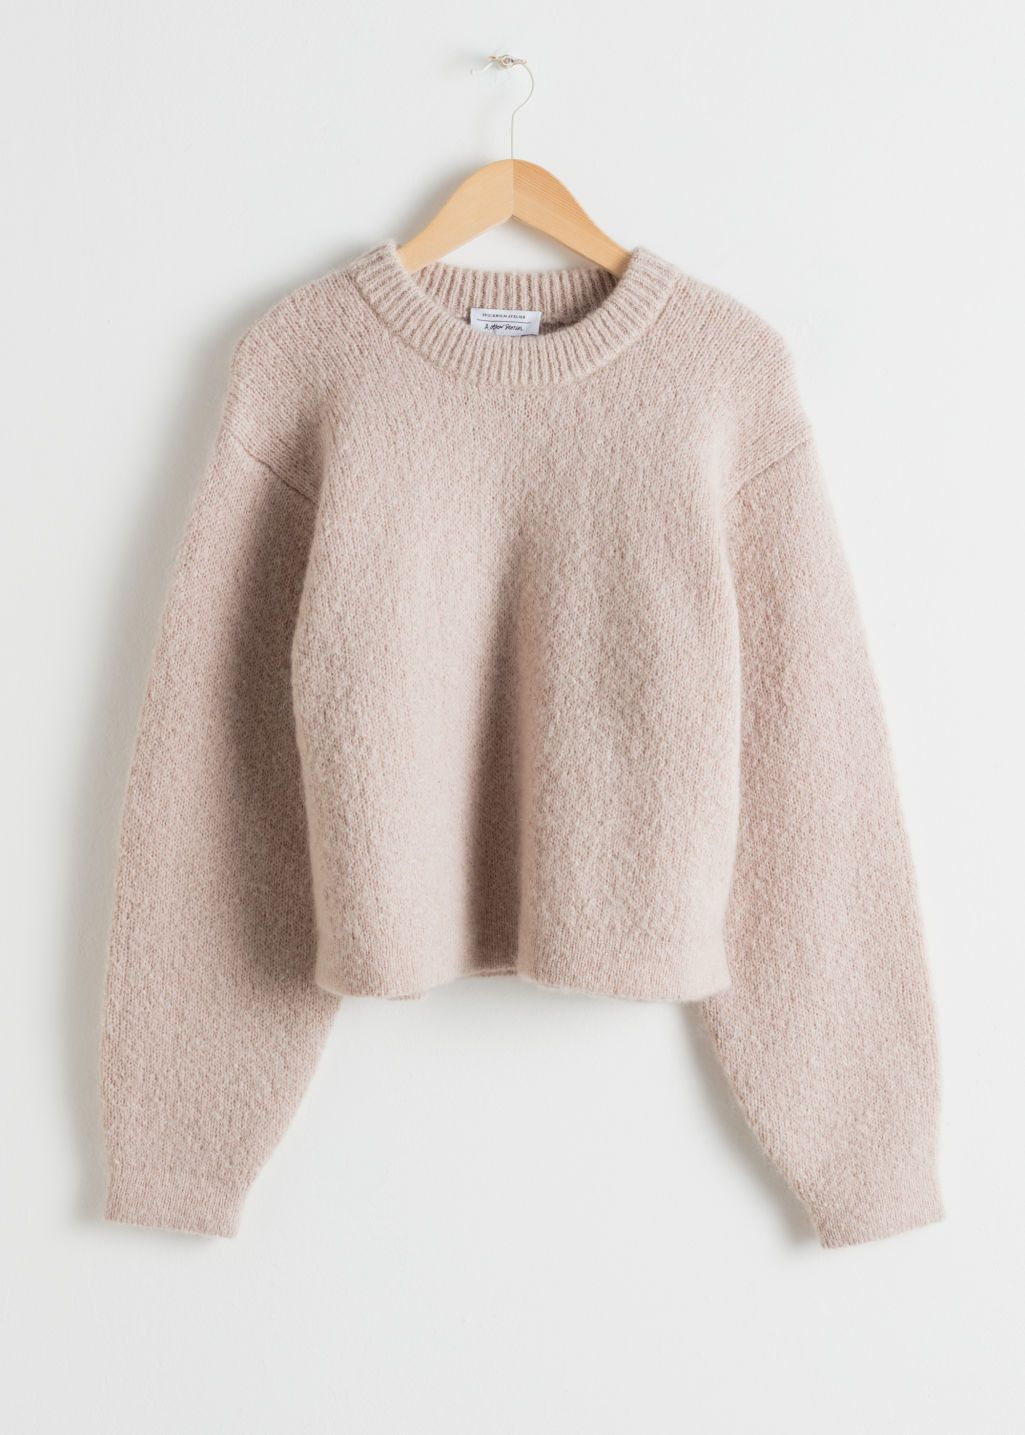 2c7732b19e2015 Length of sweater: / (size S) Model wears: S. Chunky Jacquard Knit Sweater  - Beige - Sweaters - & Other Stories